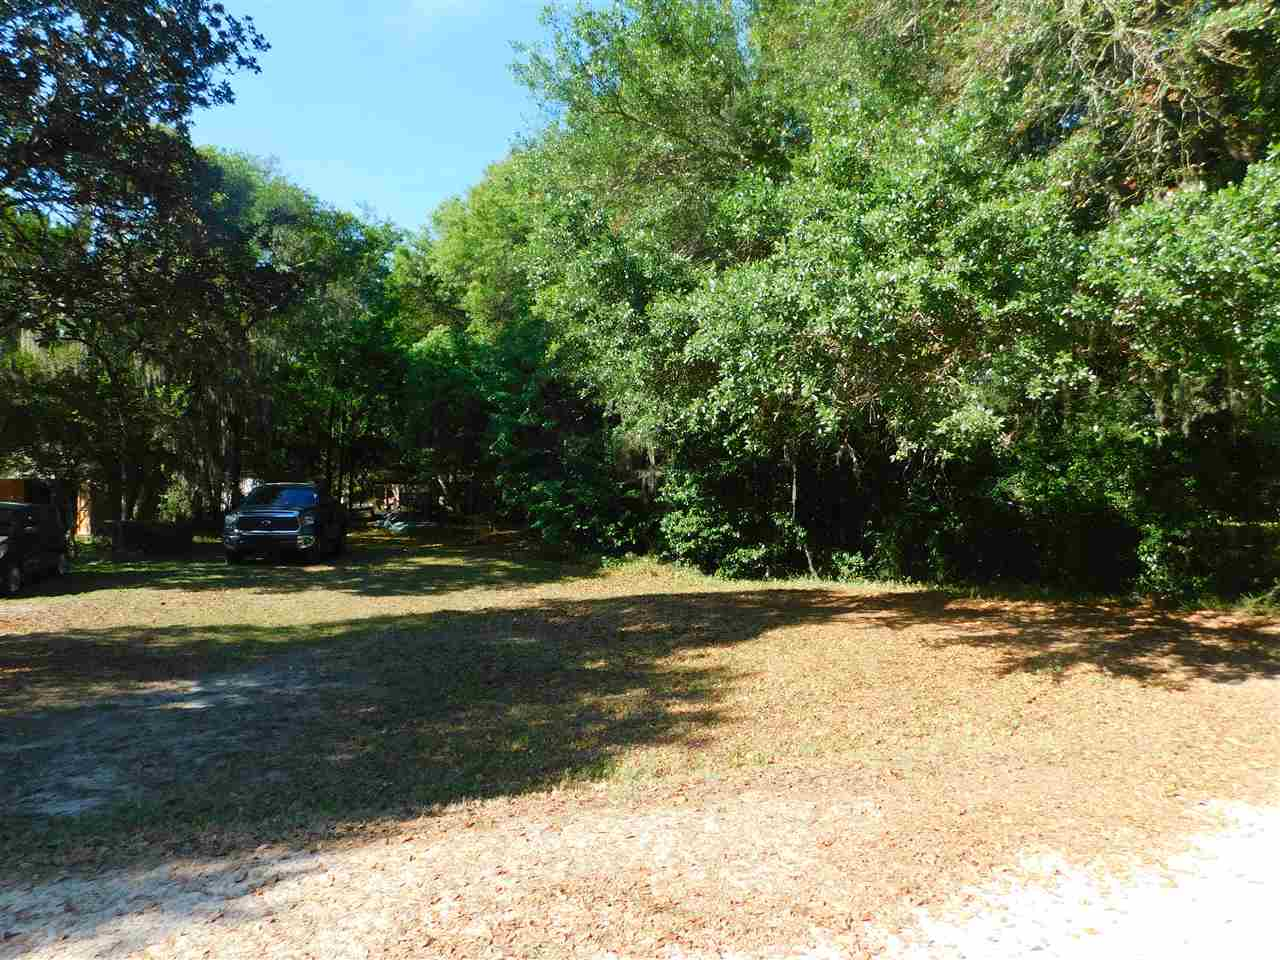 Live the good life on this canal front lot with access the gorgeous St. Johns River! The lot is partially cleared with a well and electric hook up for a mobile home. The zoning allows for a single family home, modular home, or mobile home so you can bring your imagination and make Colee Cove your new home at the River.